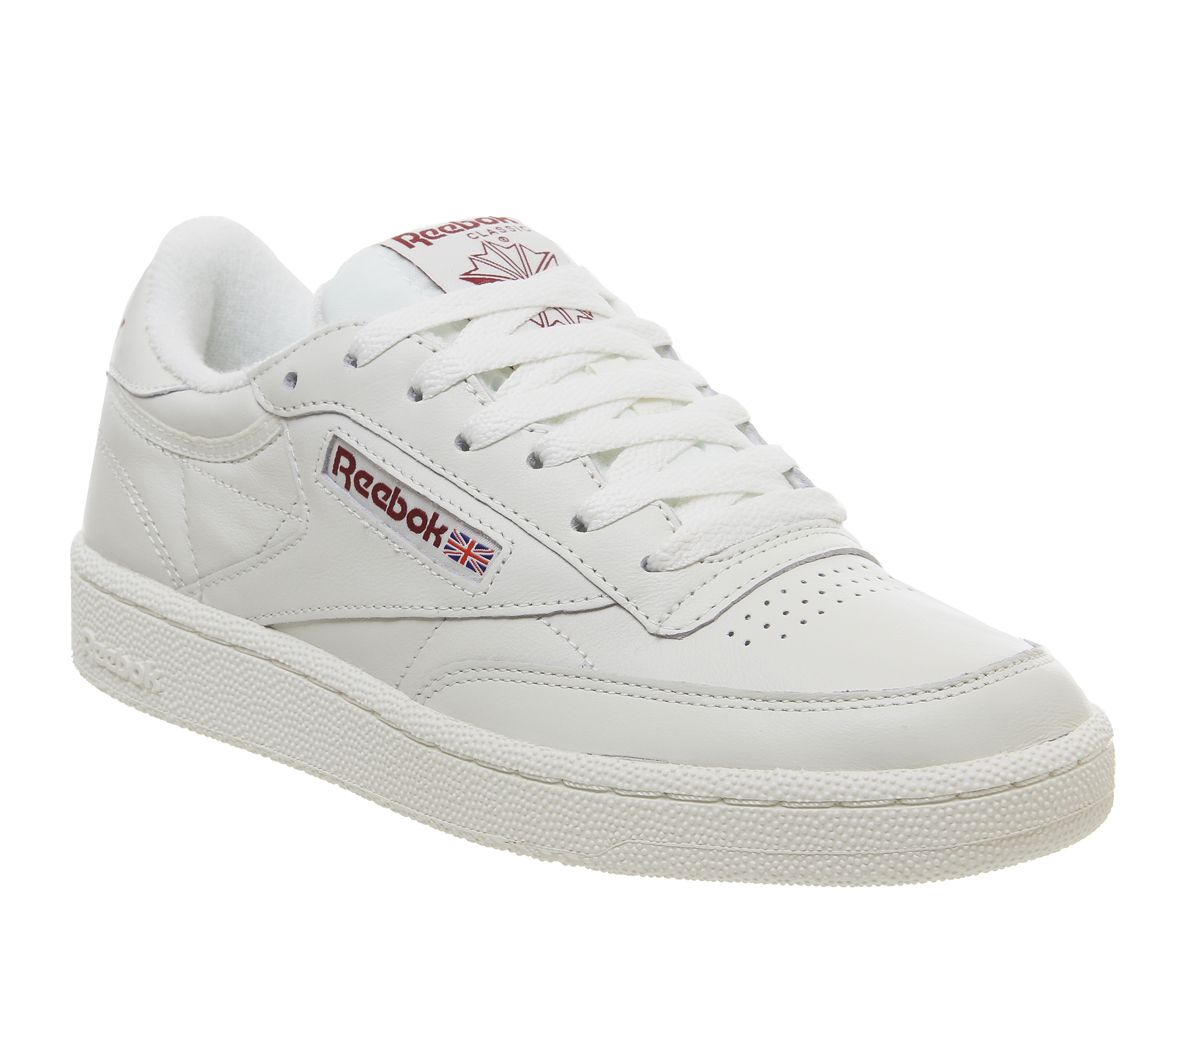 Club Details 85 Reebok Zu Shoes Vintage Trainers Chalk Red Meteor C OwPnXNk80